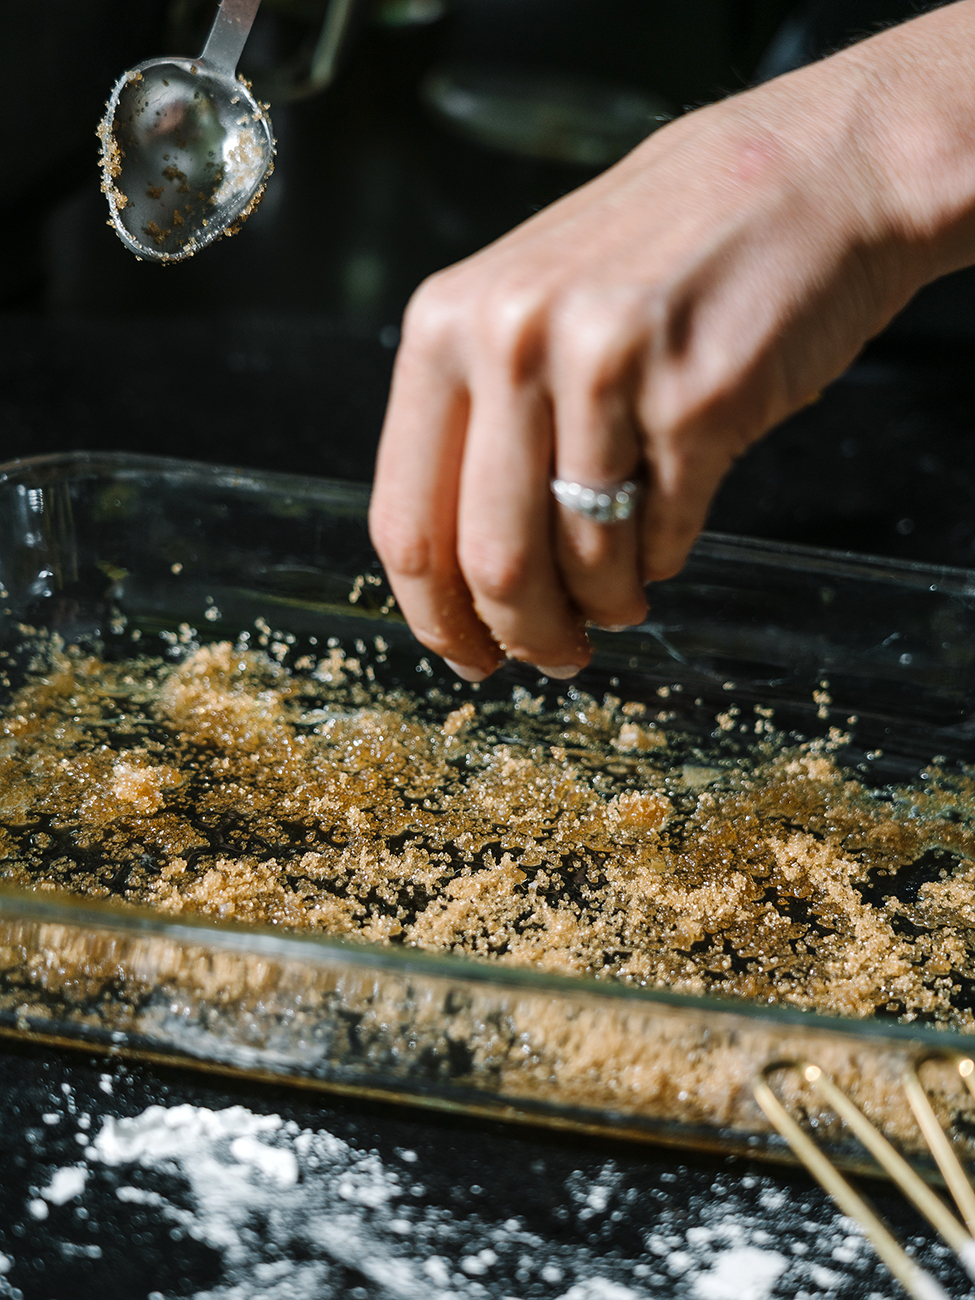 Sugar being sprinkled into a glass baking dish